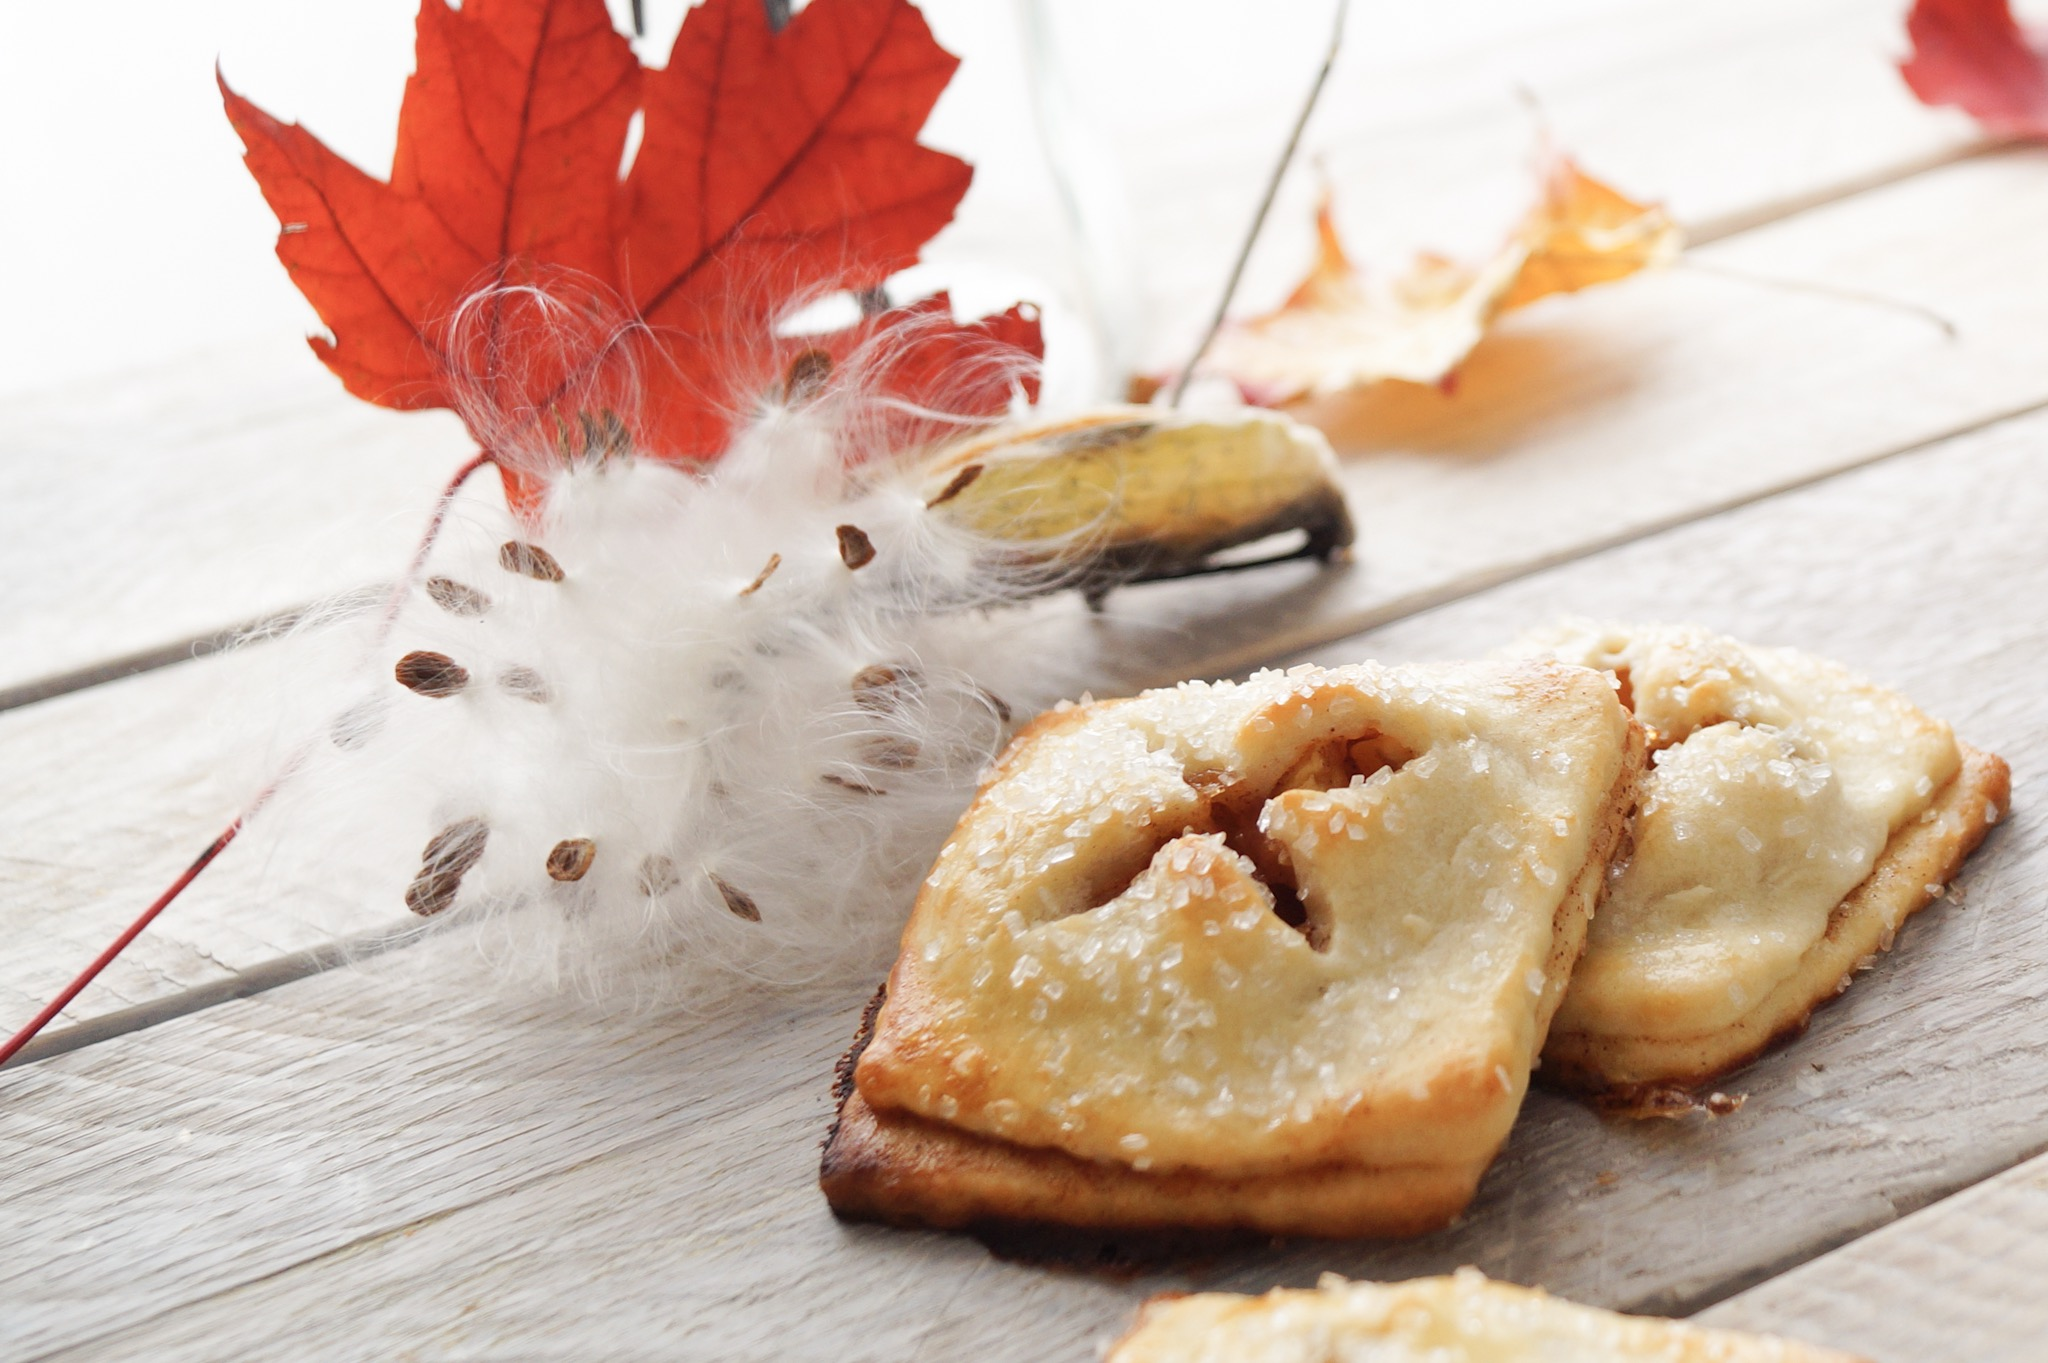 Mini apple pies for slow fall mornings by Mandy Tetrault: A messy Bun Kitchen, Apple pie recipes, apple pie filling, desserts for a crowd, thanksgiving desserts, easy apple pie recipe,  flaky pie crust, homemade pie crust, homemade apple pie, desserts for fall, dessert for a crowd, easy dessert recipes, fall dessert recipes, fall aesthetic, fall aesthetic photography, light and airy fall photography, light and airy food photography,